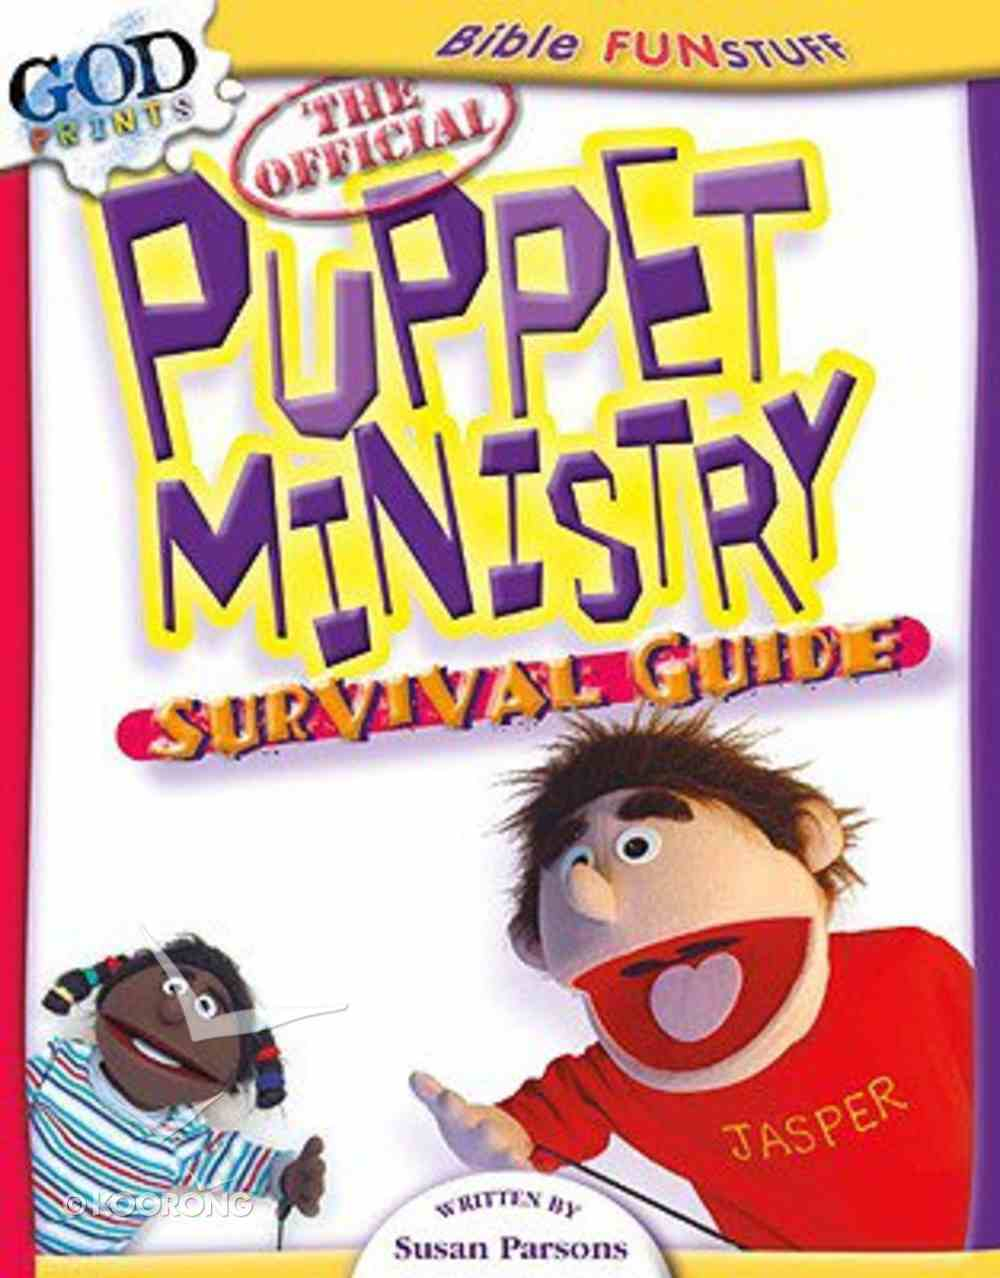 The Official Puppet Ministry Survival Guide (Godprints Bible Fun Stuff Series) Paperback